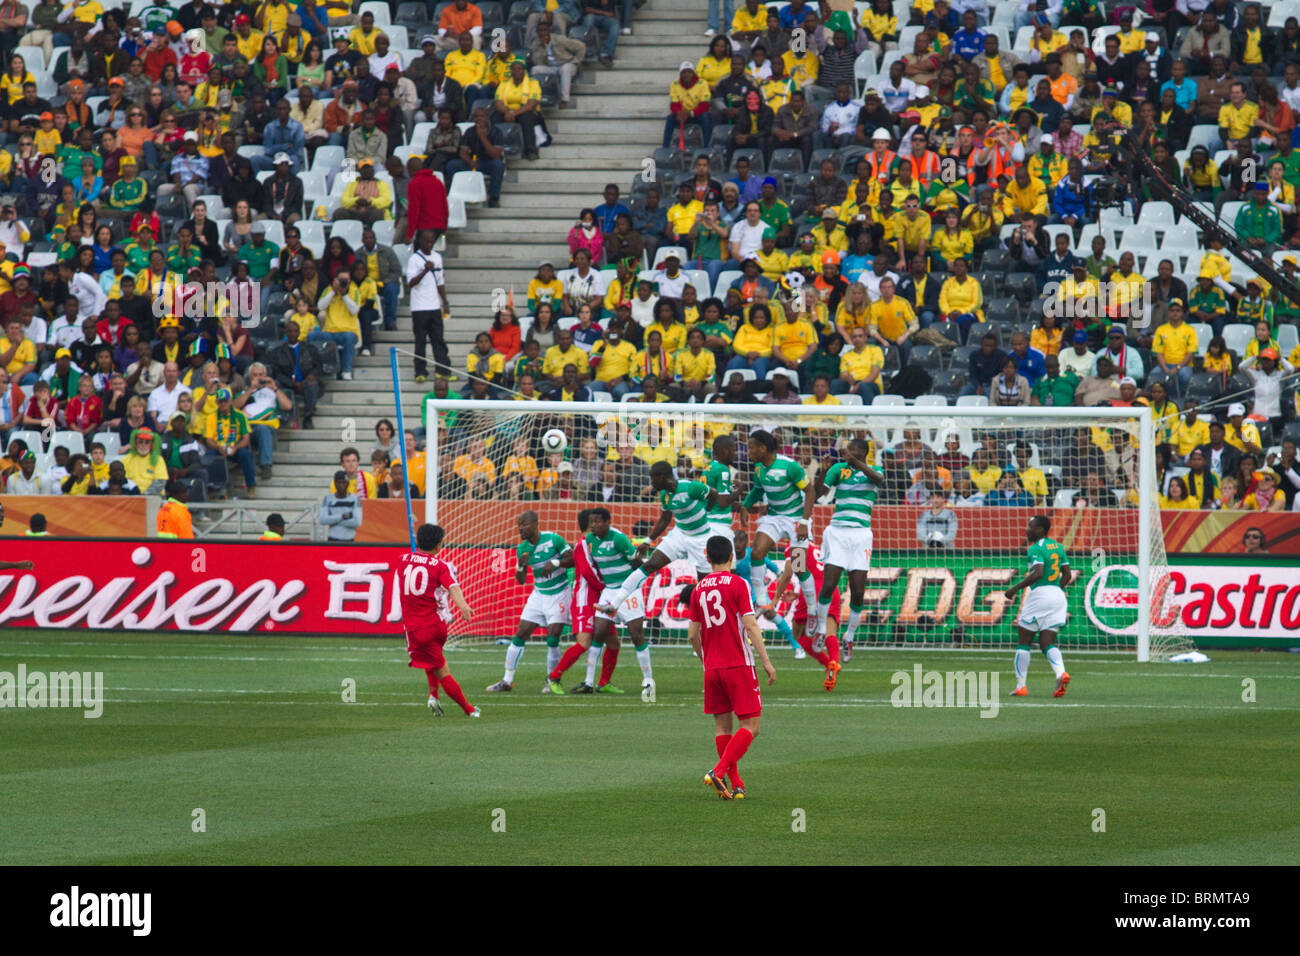 H. Yong Jo takes a free kick on goal during the 2010 World Cup match between Korean DPR and Cote d'Ivoire - Stock Image